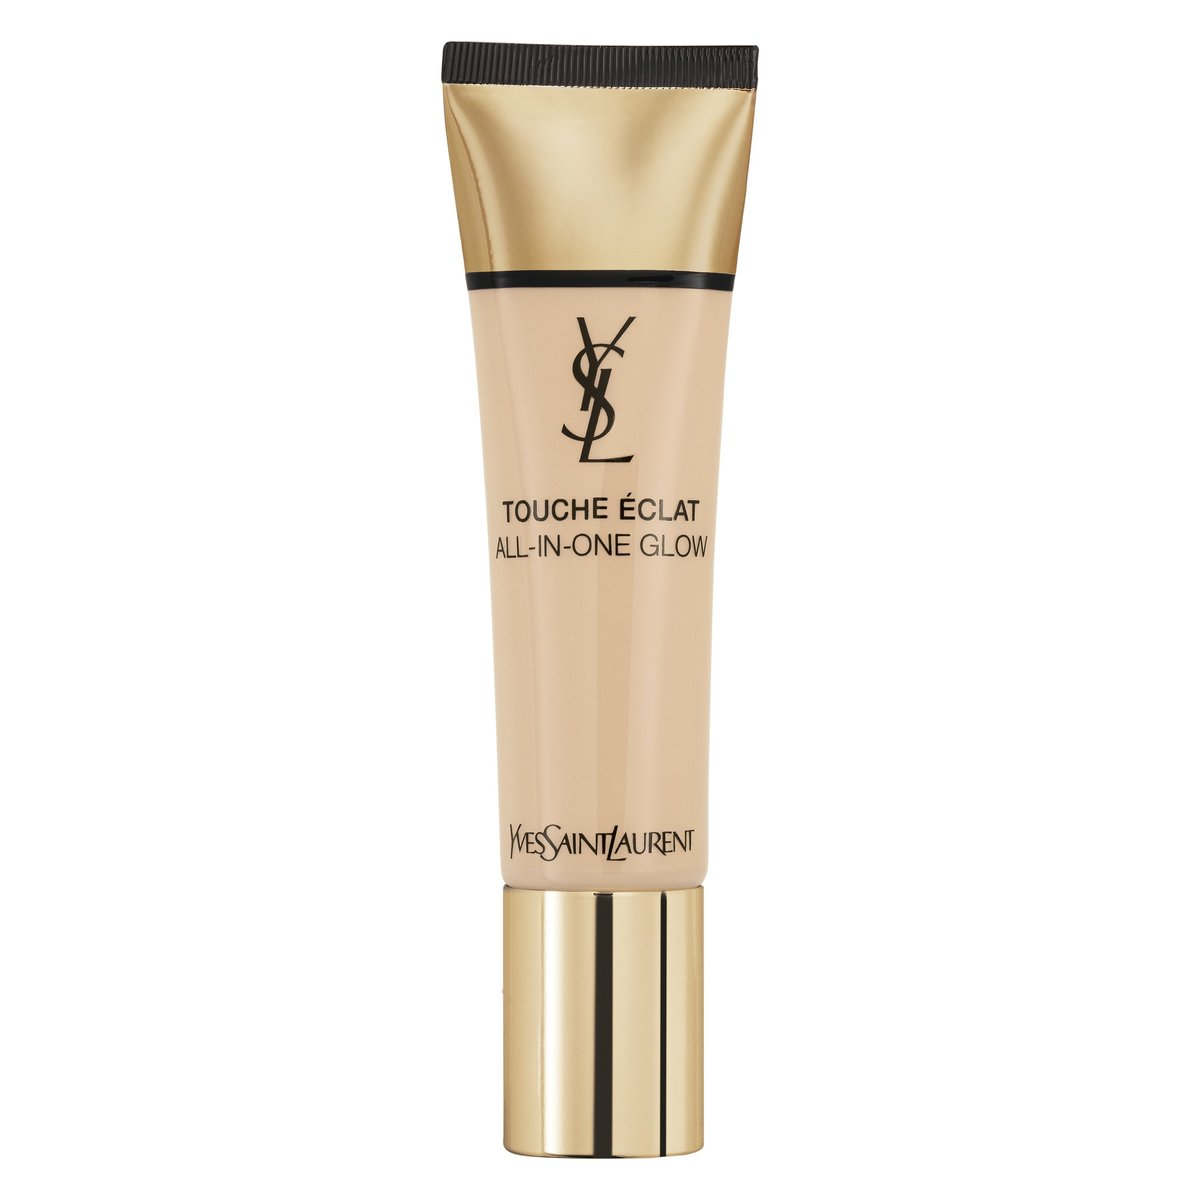 Yves Saint Laurent - Touche Eclat All in One Glow